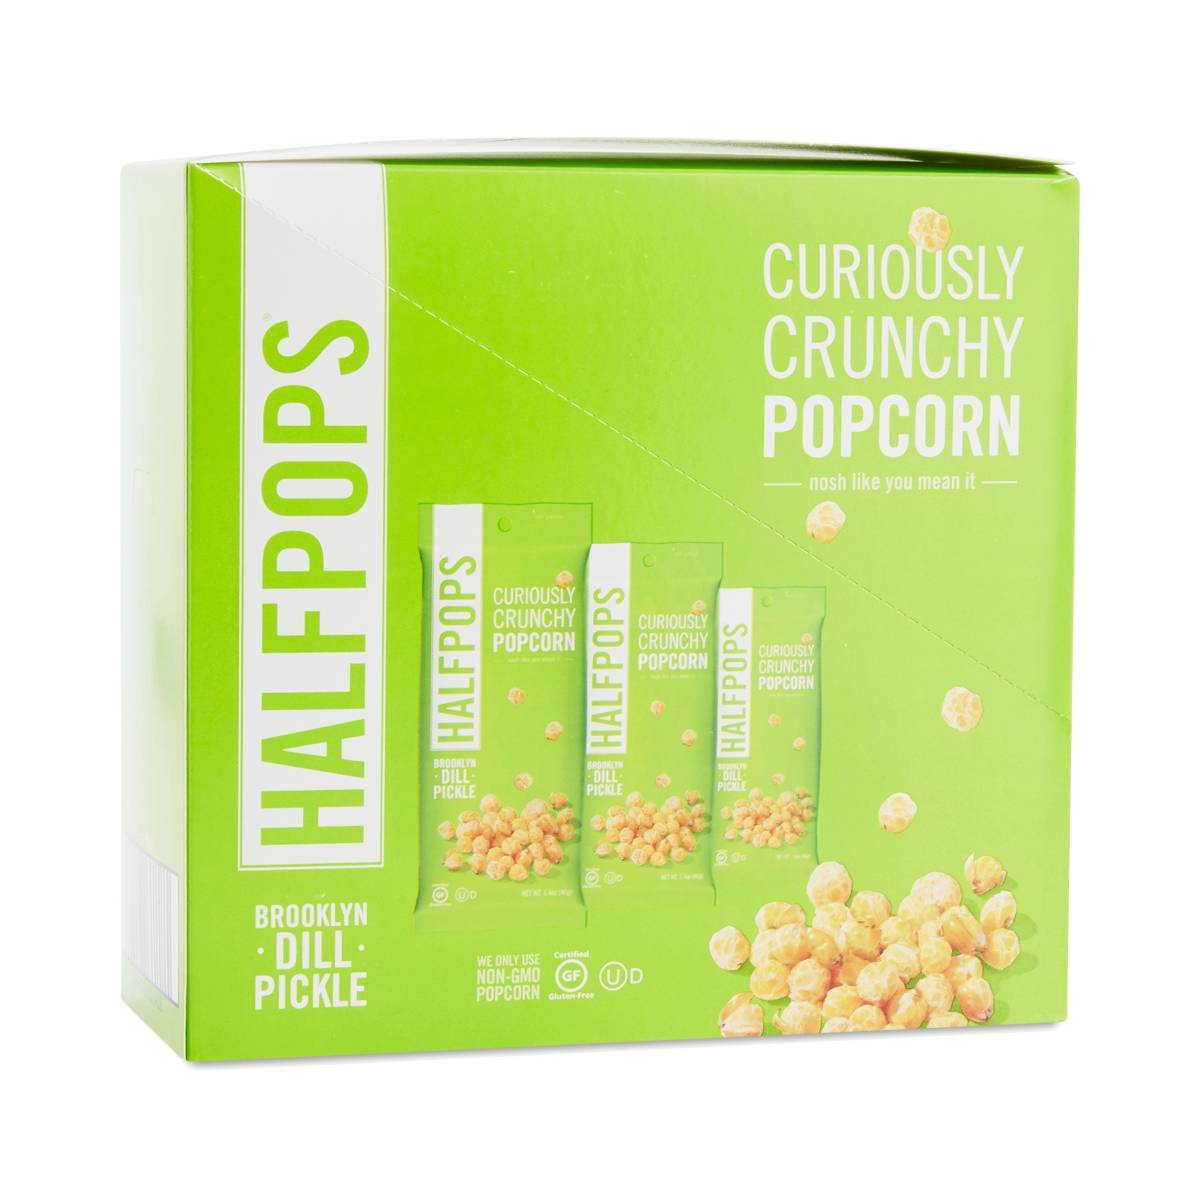 halfpops brooklyn dill pickle crunchy popcorn thrive market